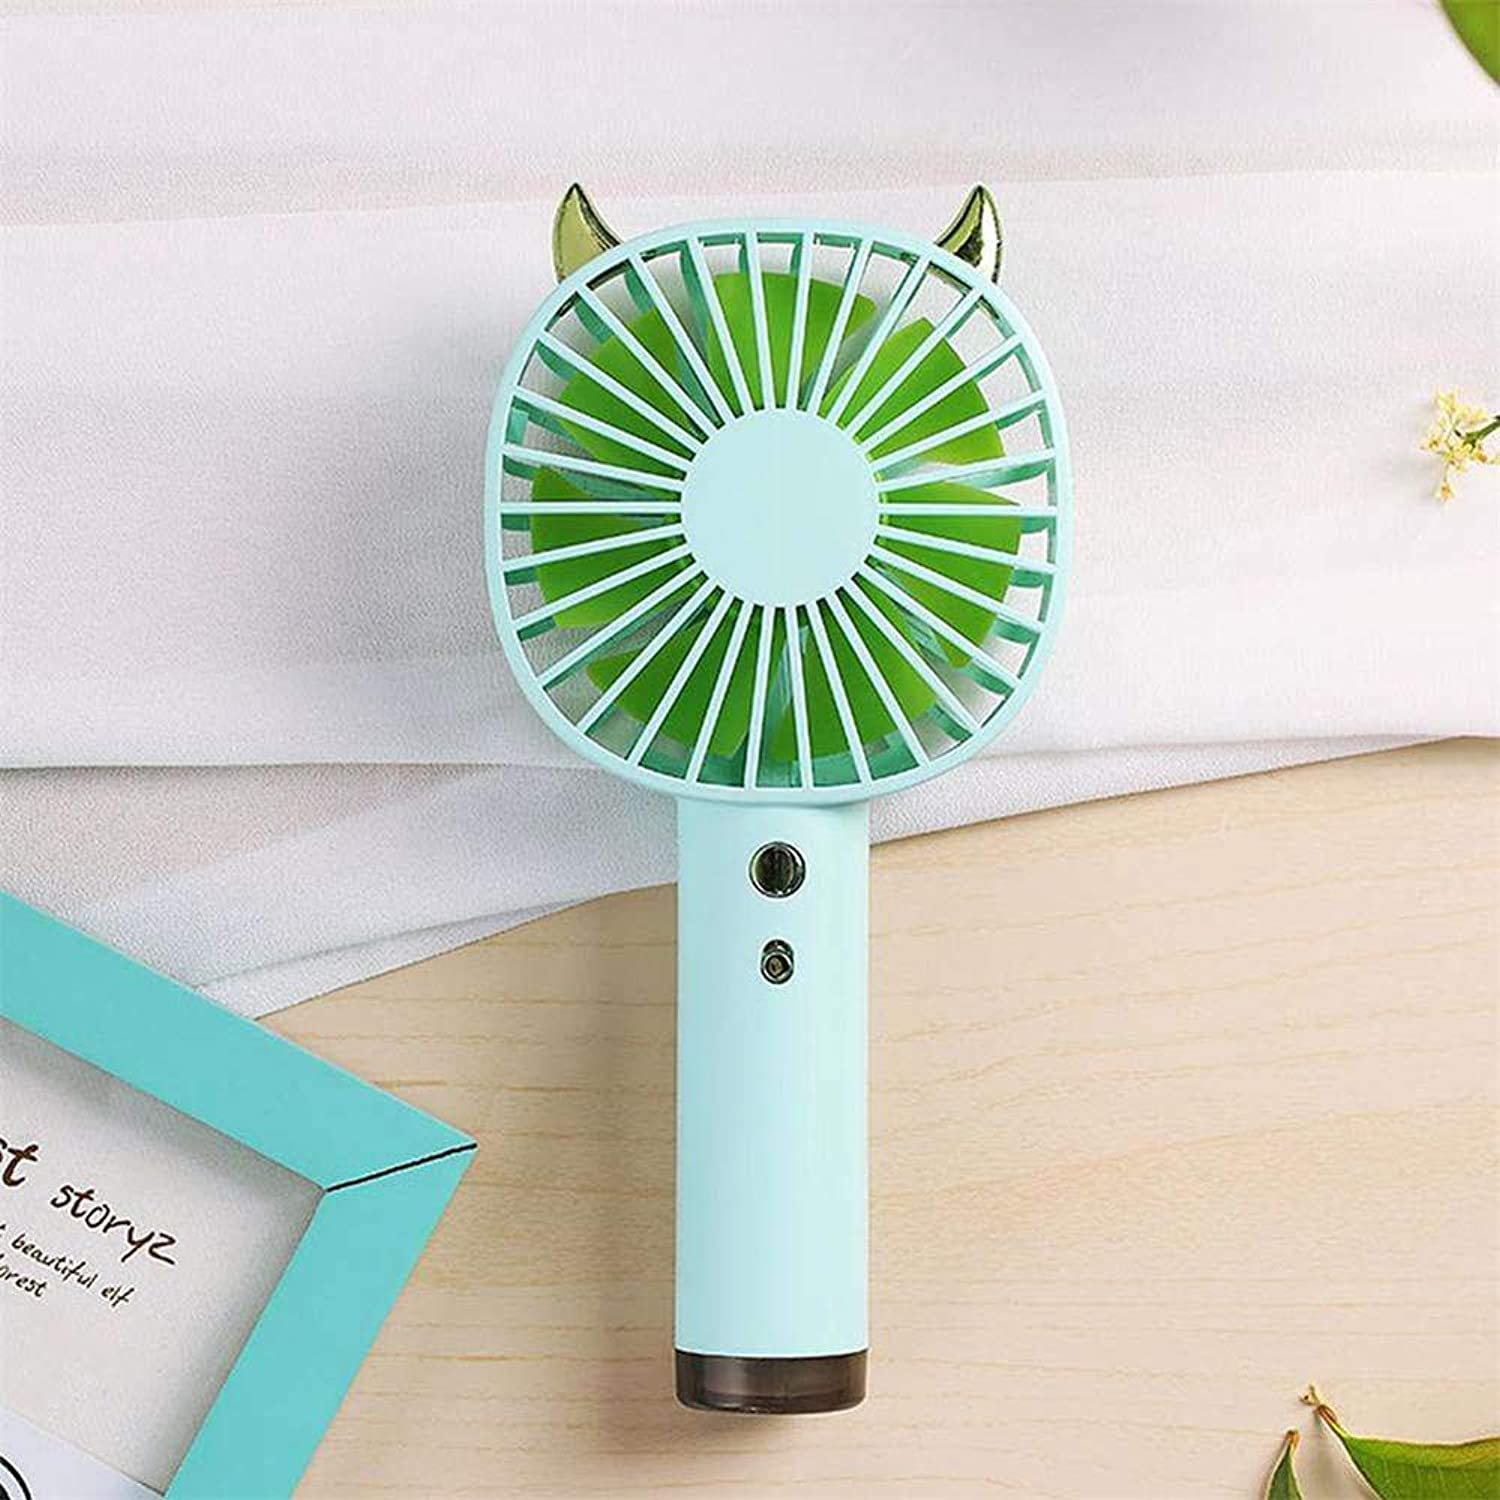 Small Personal USB Fan - Hulorry Portable Mini Handheld Fan with 3 Speed Adjustable & colorful LED Night Light, Whisper Quiet Cyclone Air Circulating Technology for Home Office Outdoor Travel (Green)